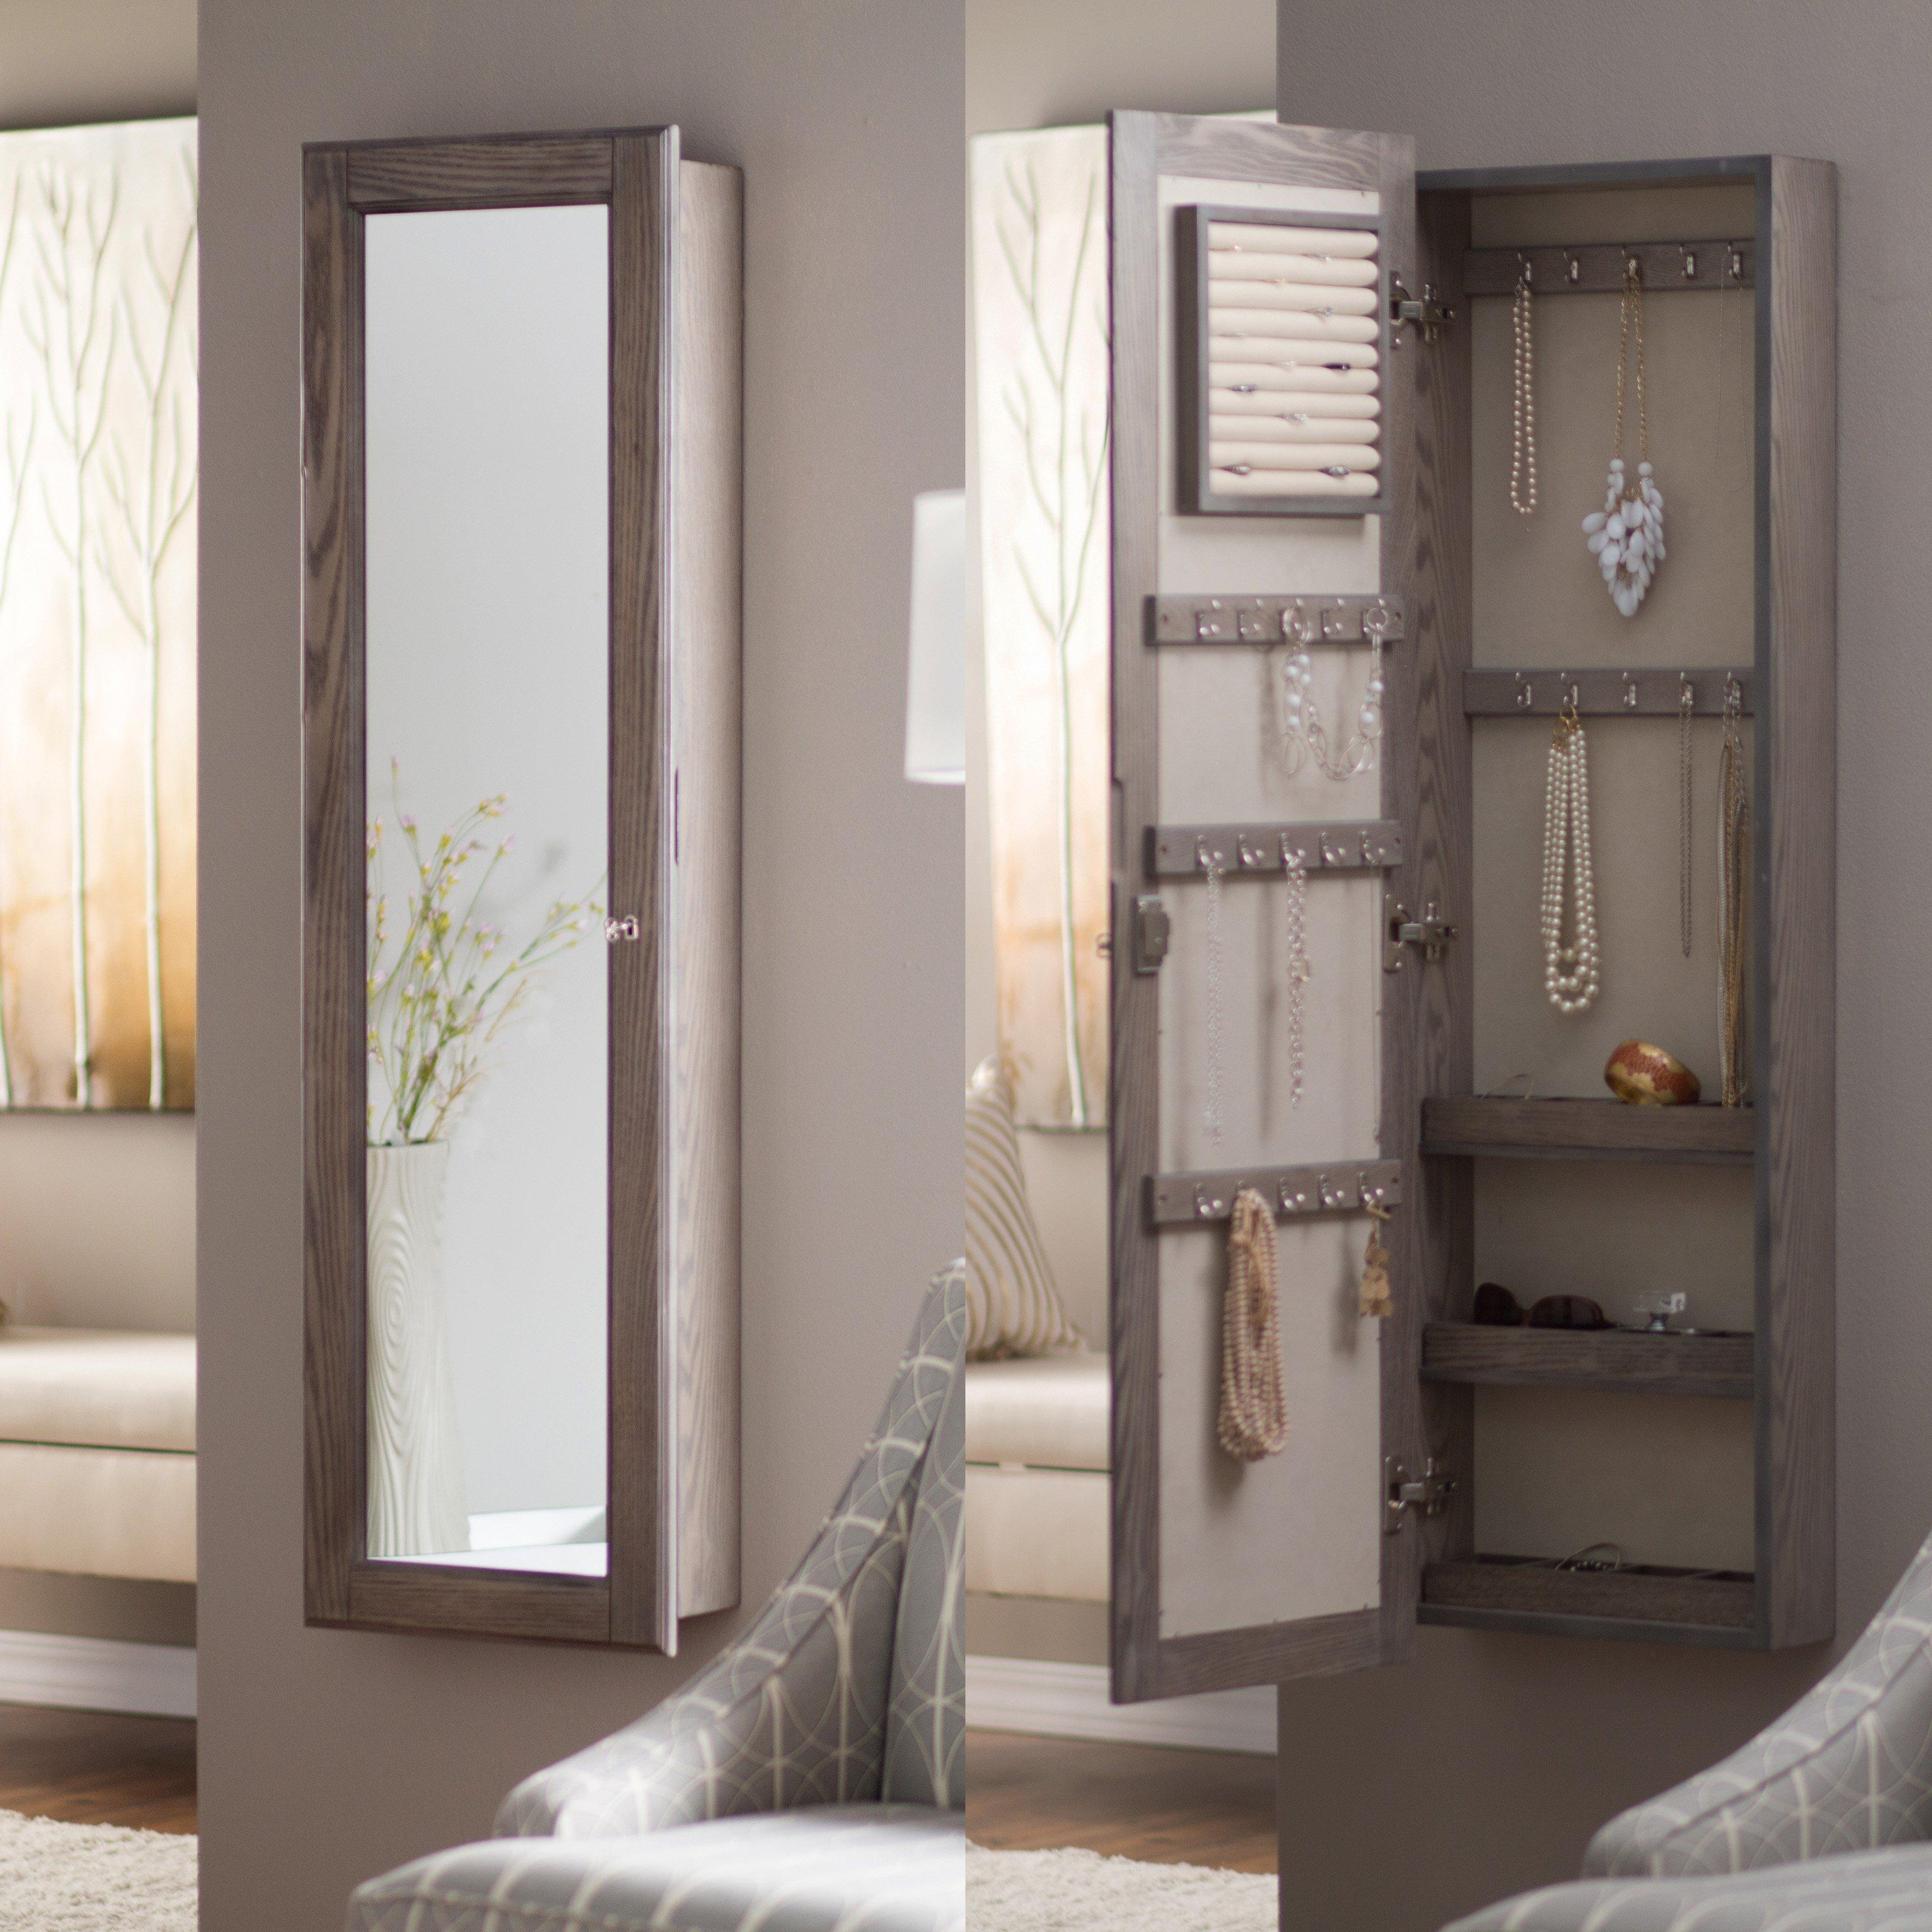 20 Ideas of Wall Mounted Mirrors for Bedroom  Mirror Ideas